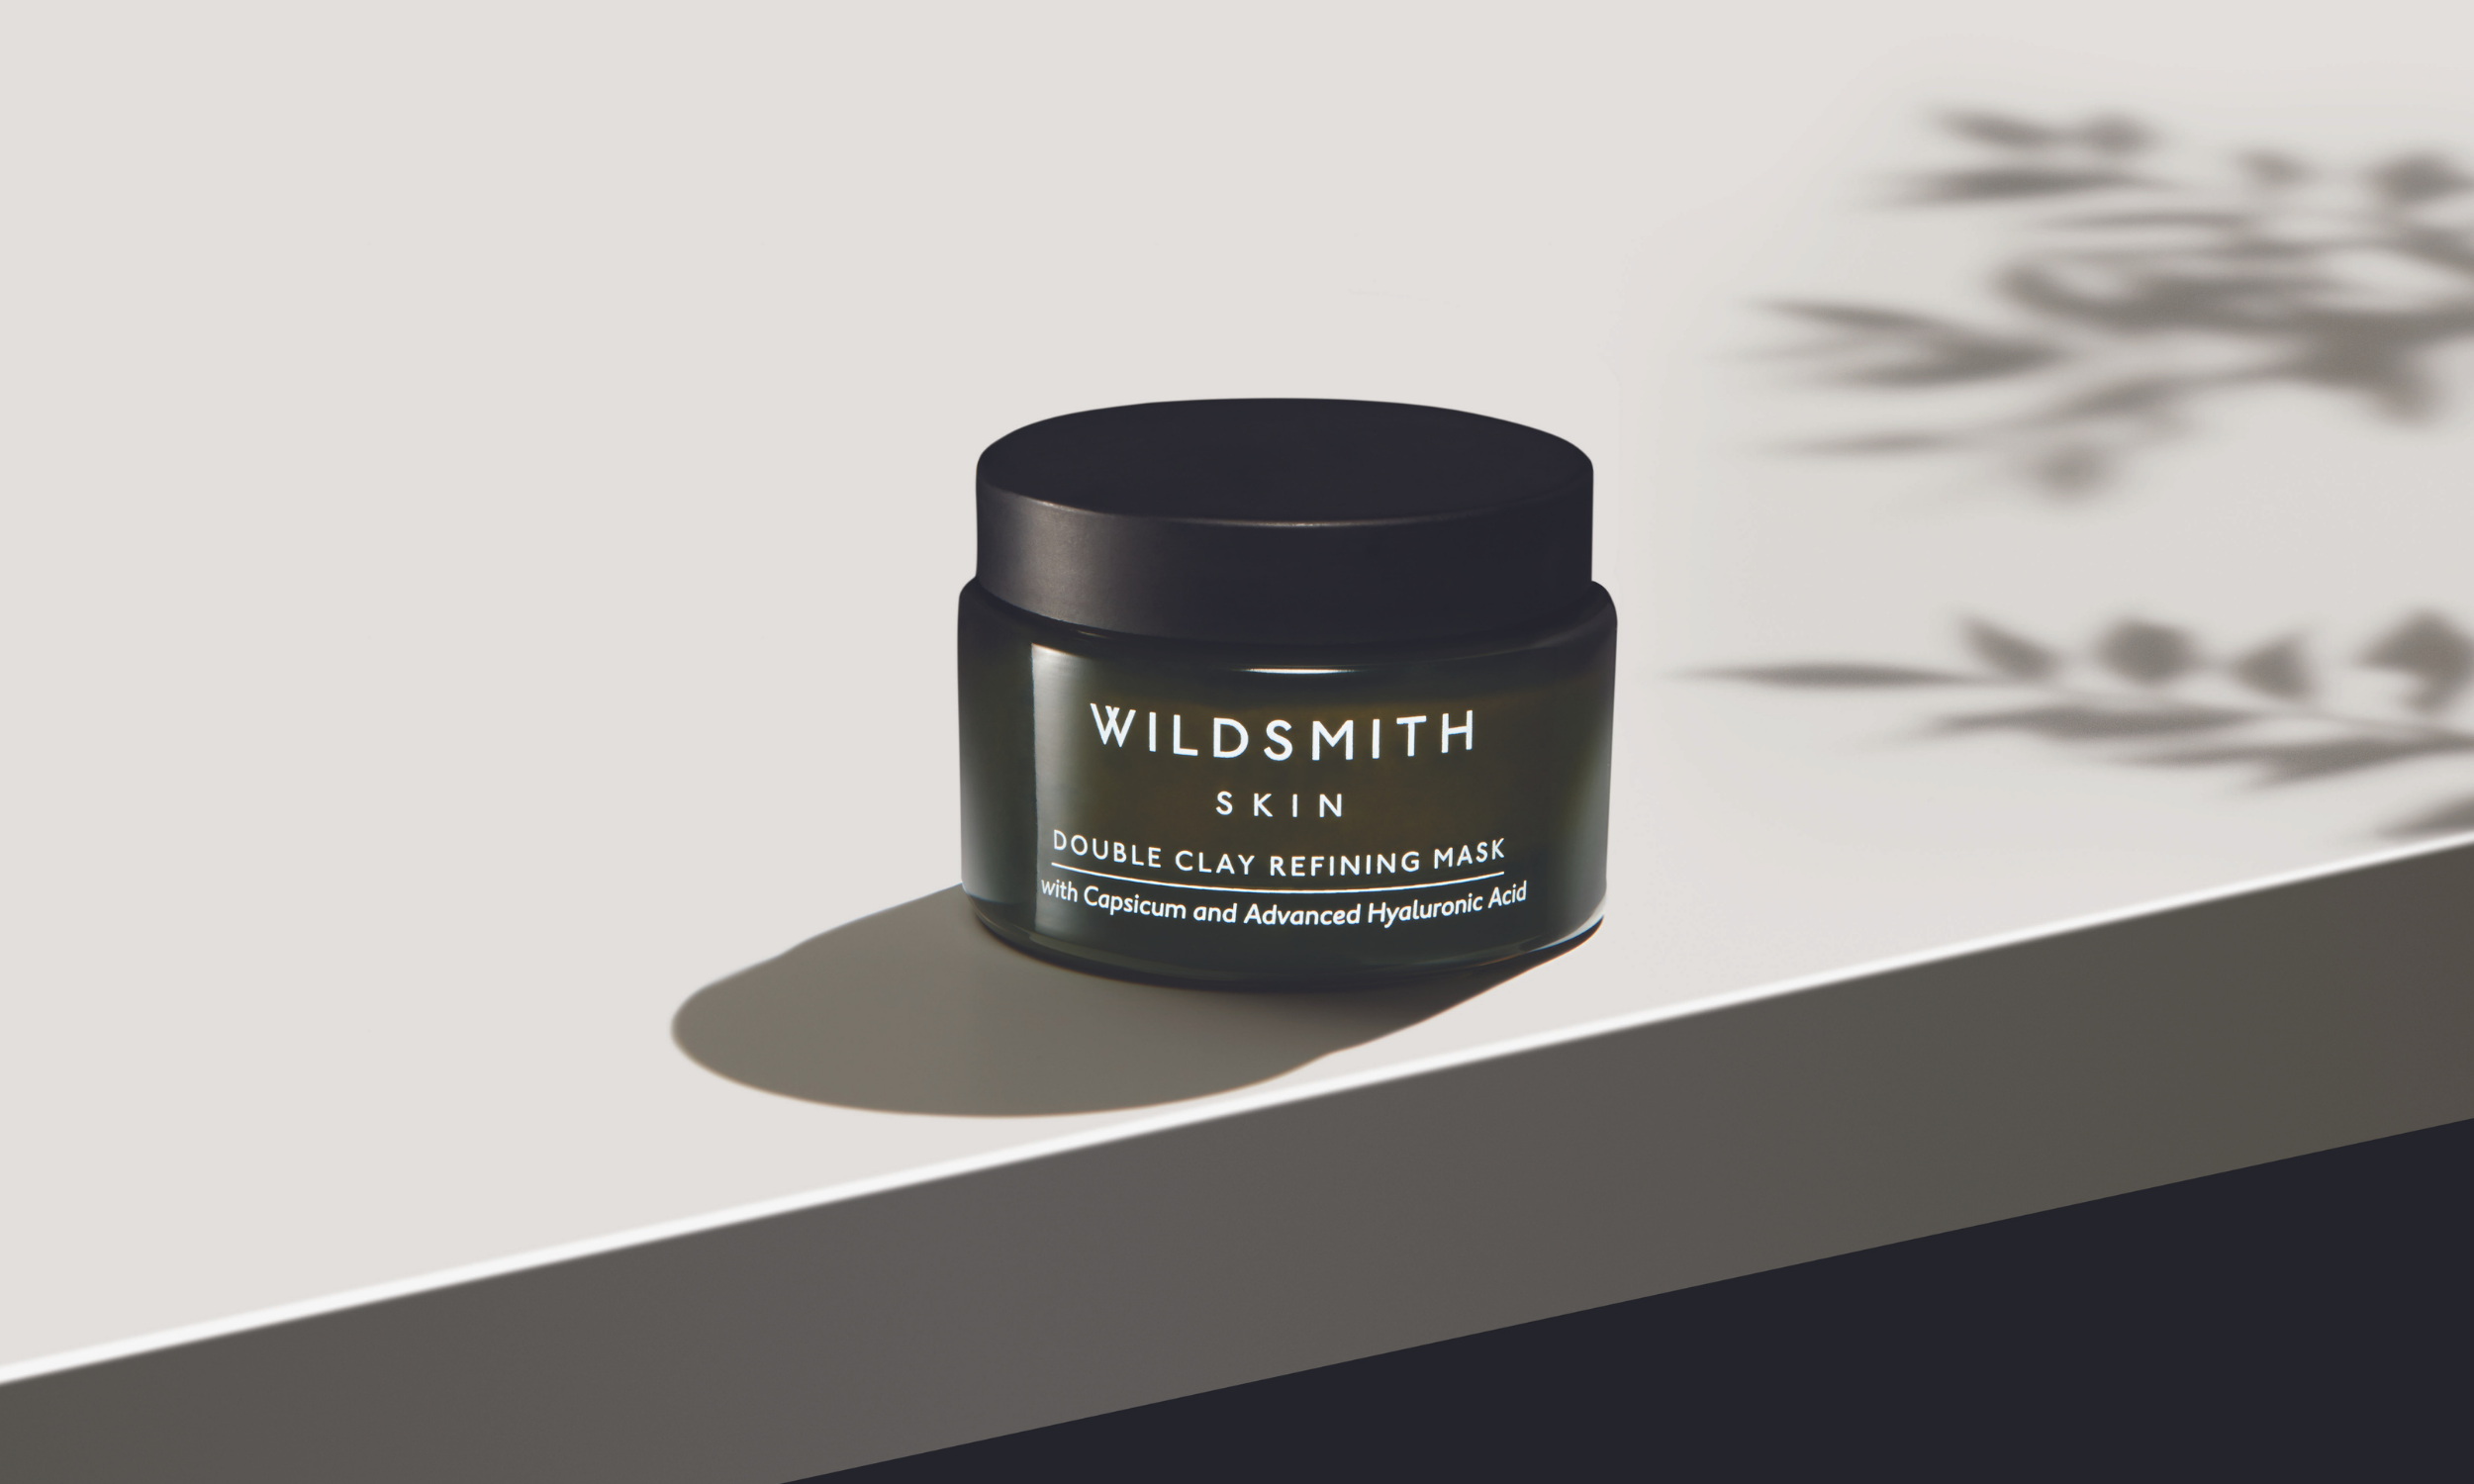 Wildsmith Double Clay Refining Mask